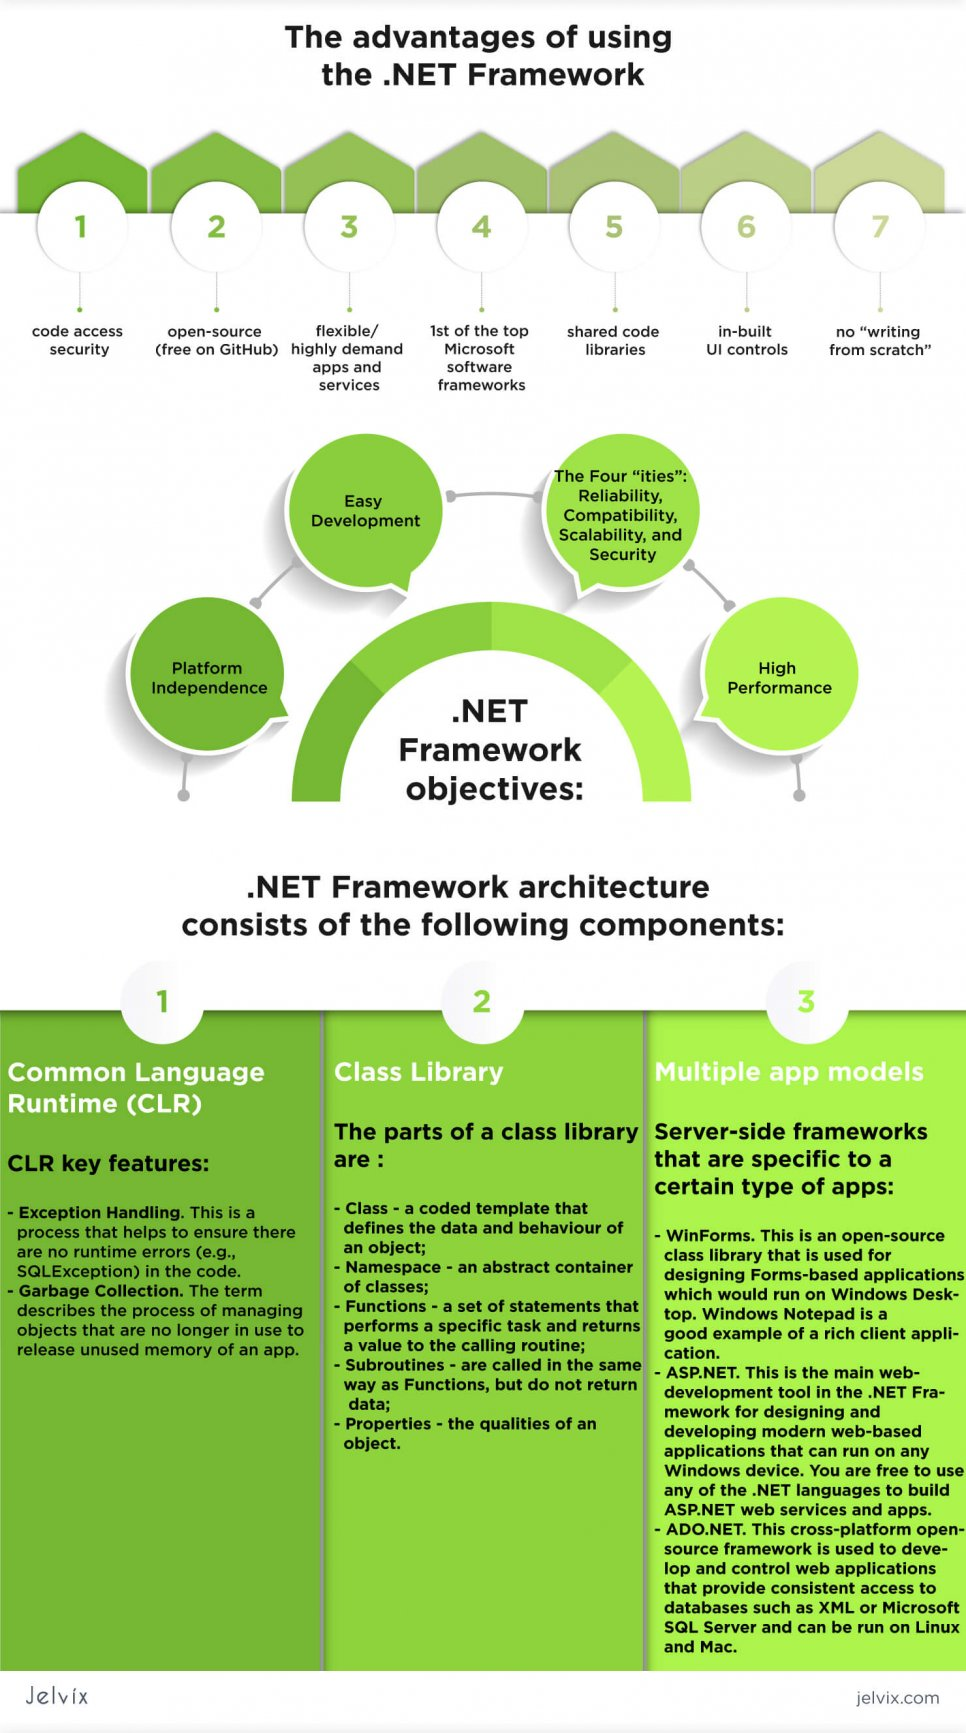 .NET framework features